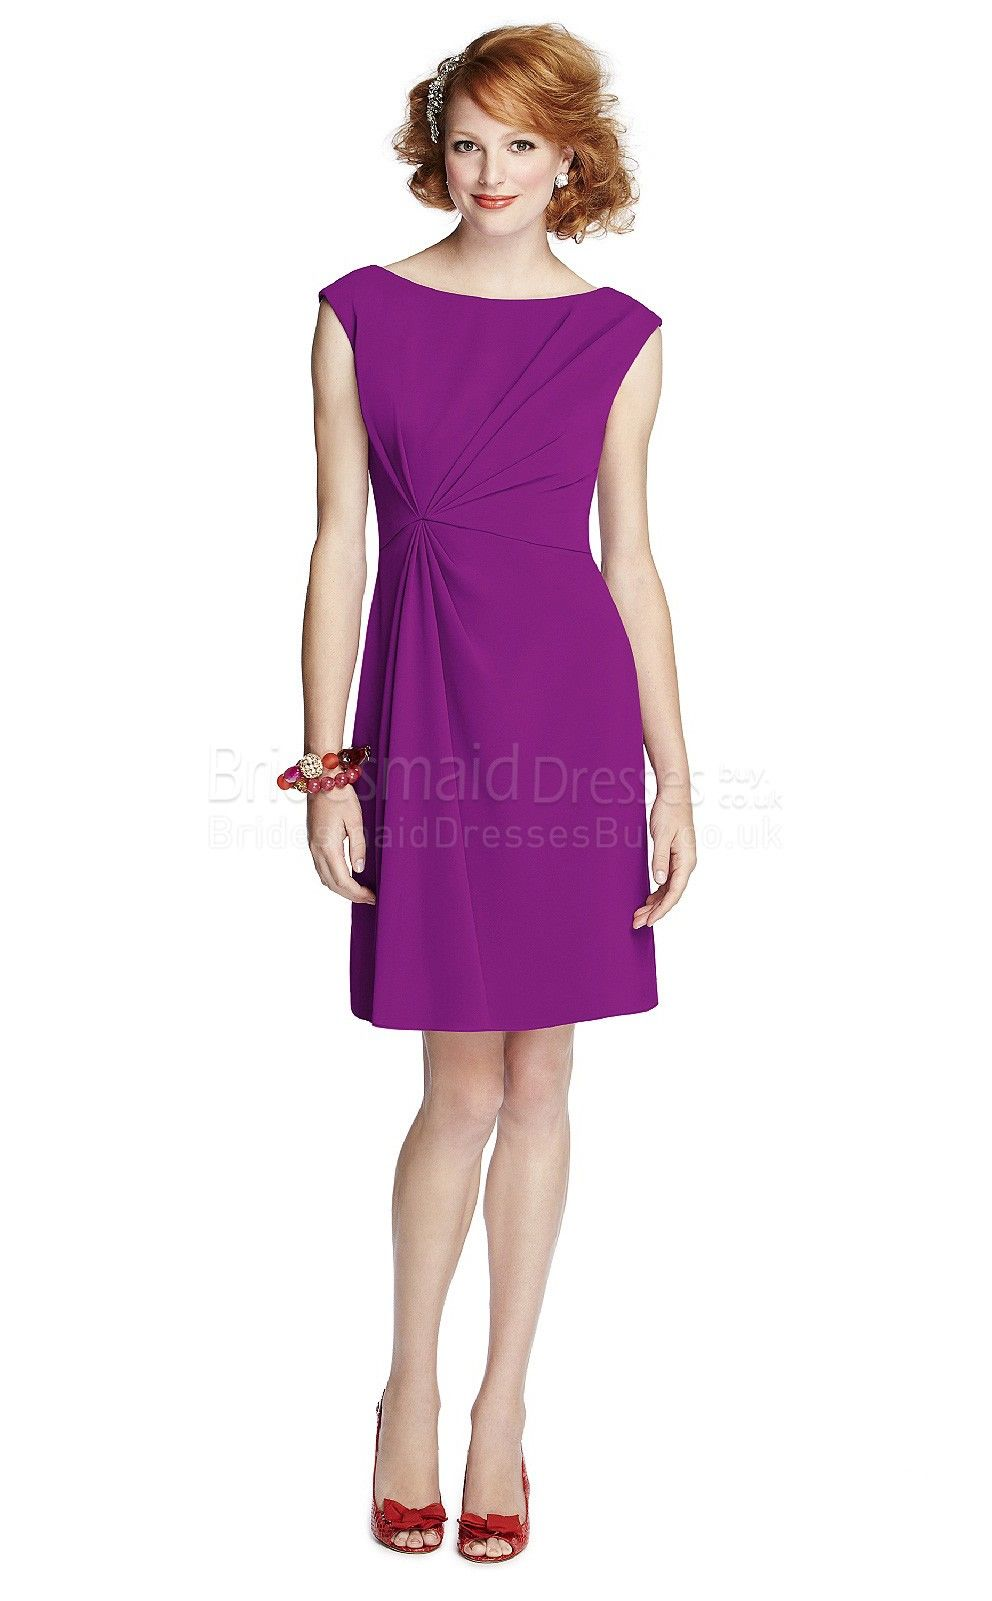 Short purple wedding dresses  Short Purple Bridesmaid Dresses purple bridesmaid dresses  My